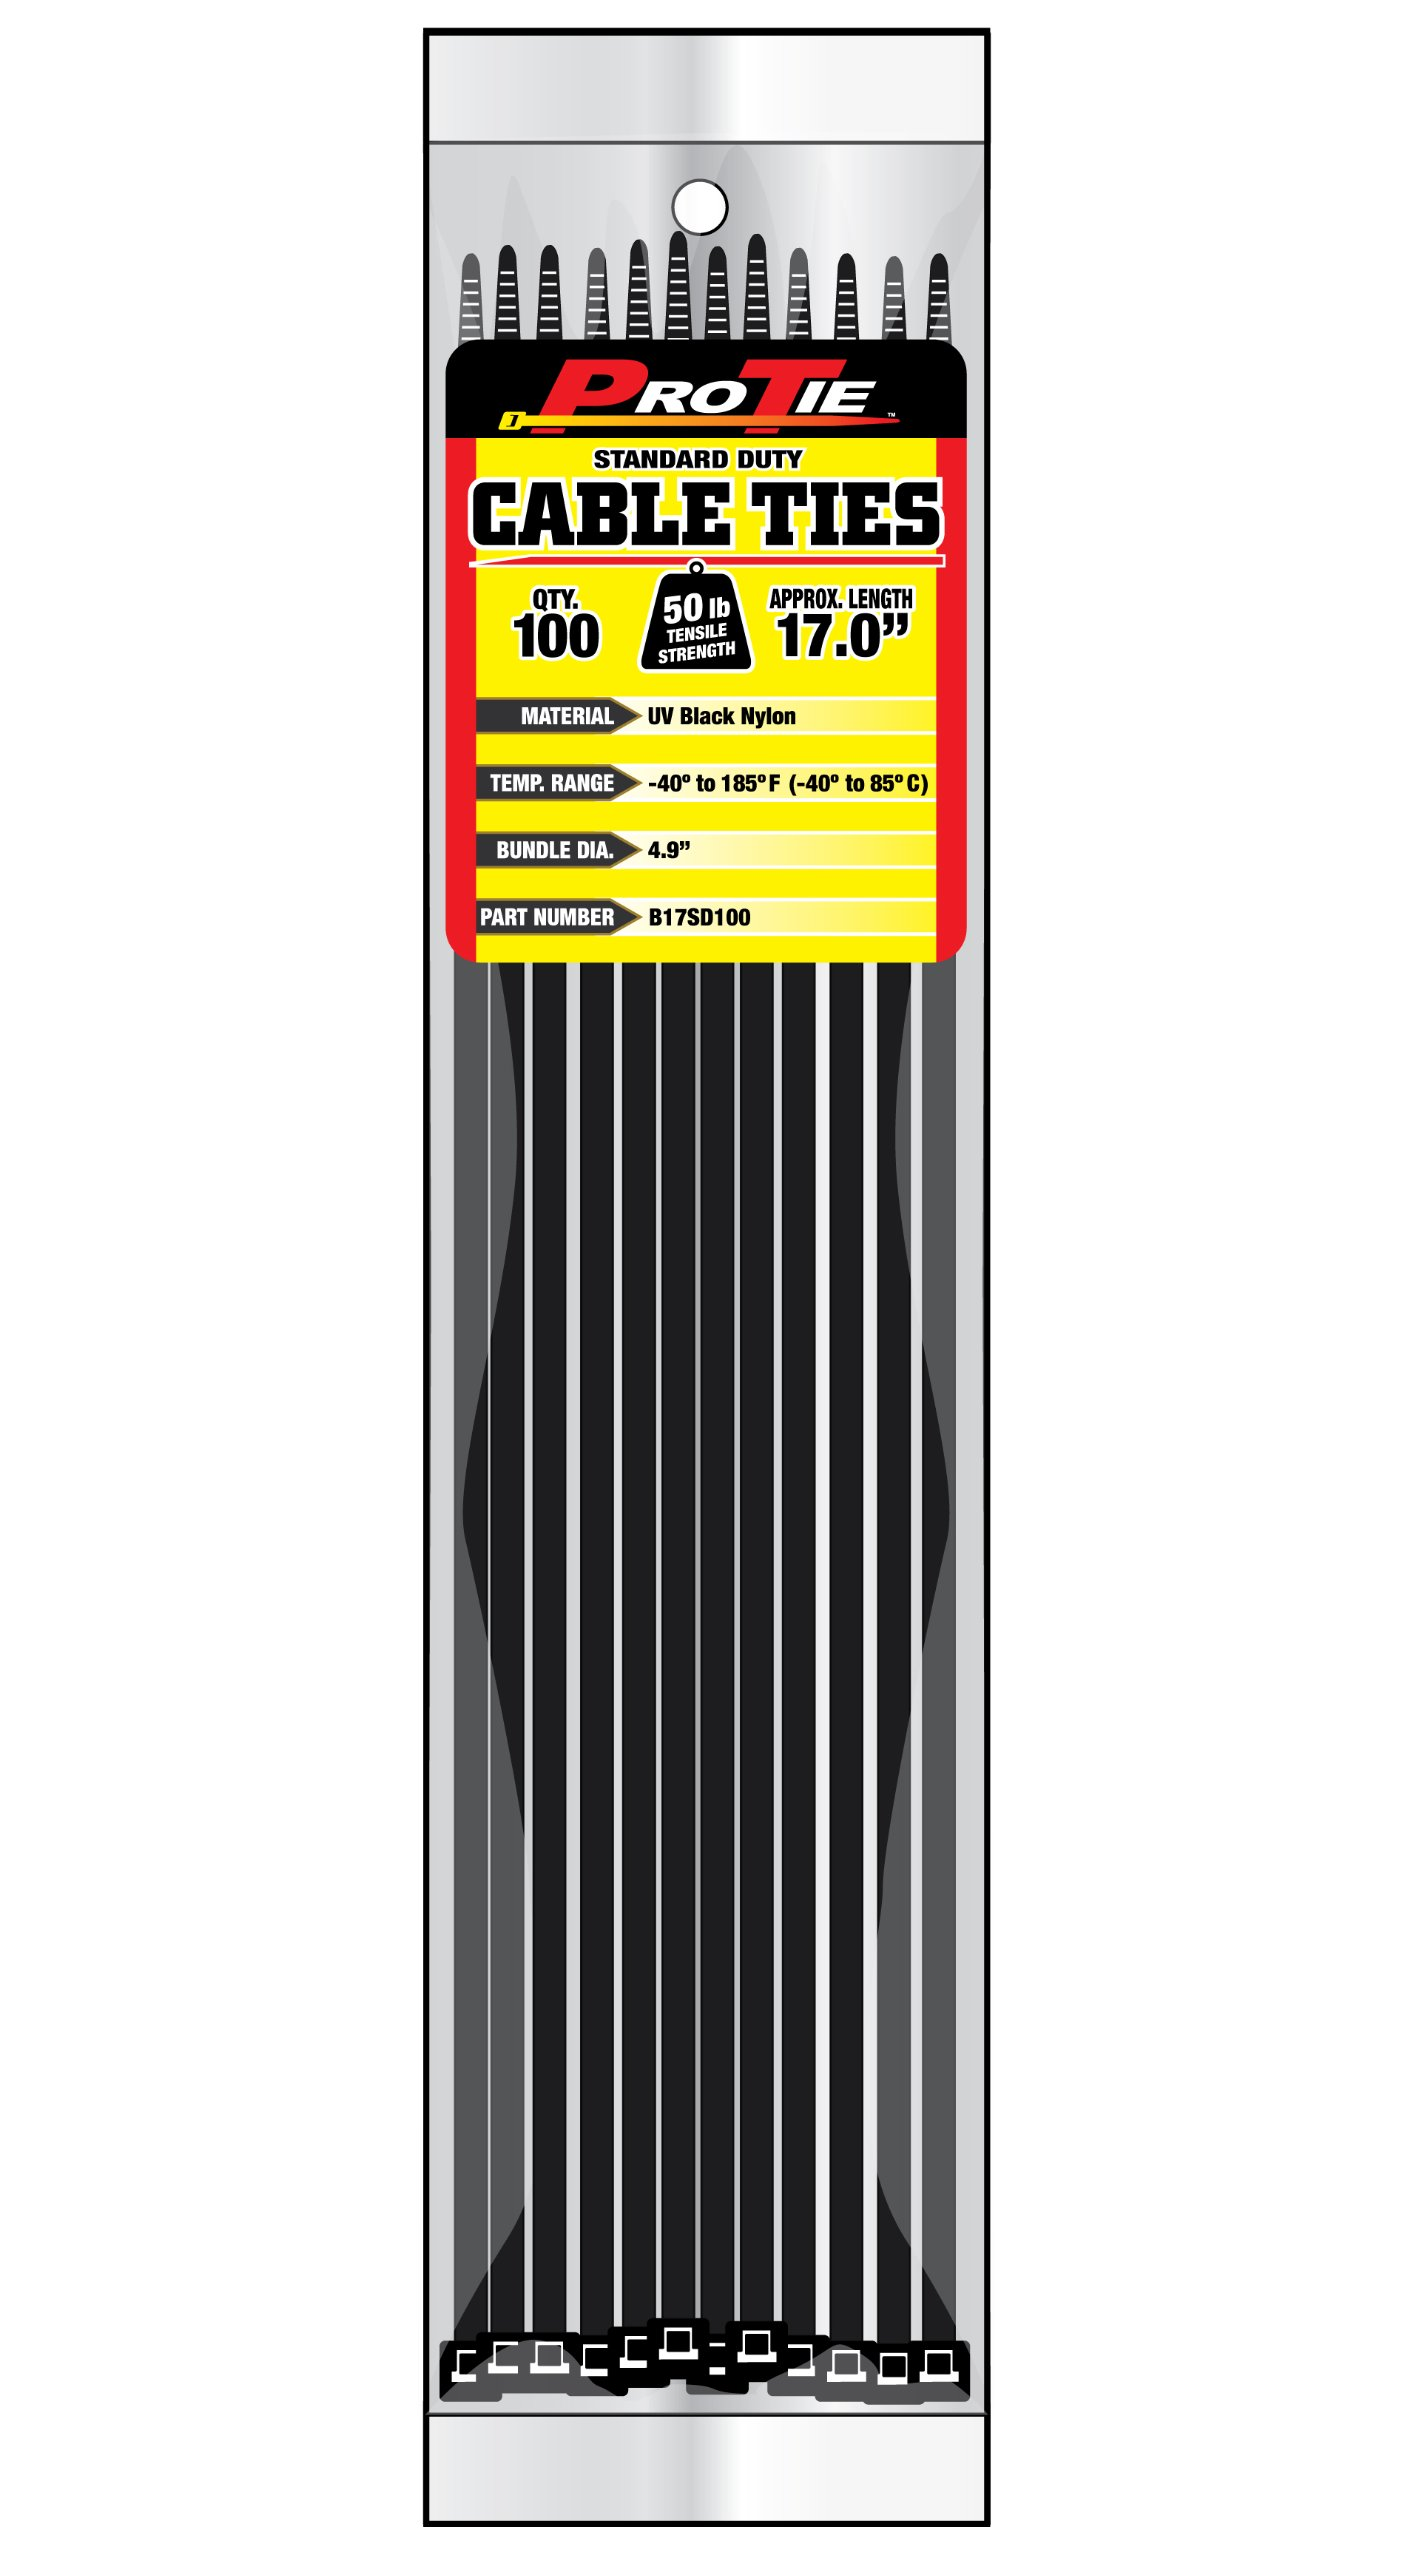 Pro Tie B17SD100 17-Inch Standard Duty Cable Tie, UV Black Nylon, 100-Pack by Pro Tie